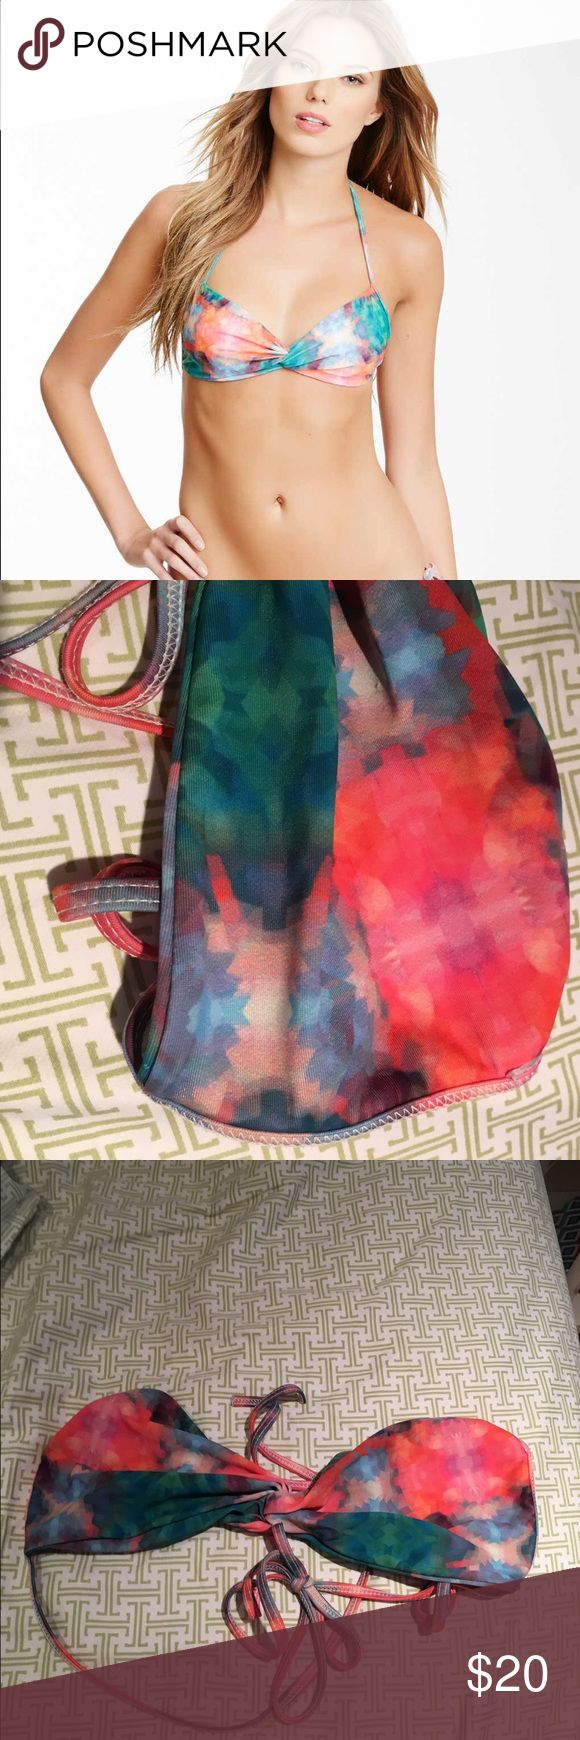 L Space Multi Color Bikini Top L Space Multi Color Bikini Top ••size large ••stellar condition, except tag is cut out ••price negotiable, no trades l*space Swim Bikinis